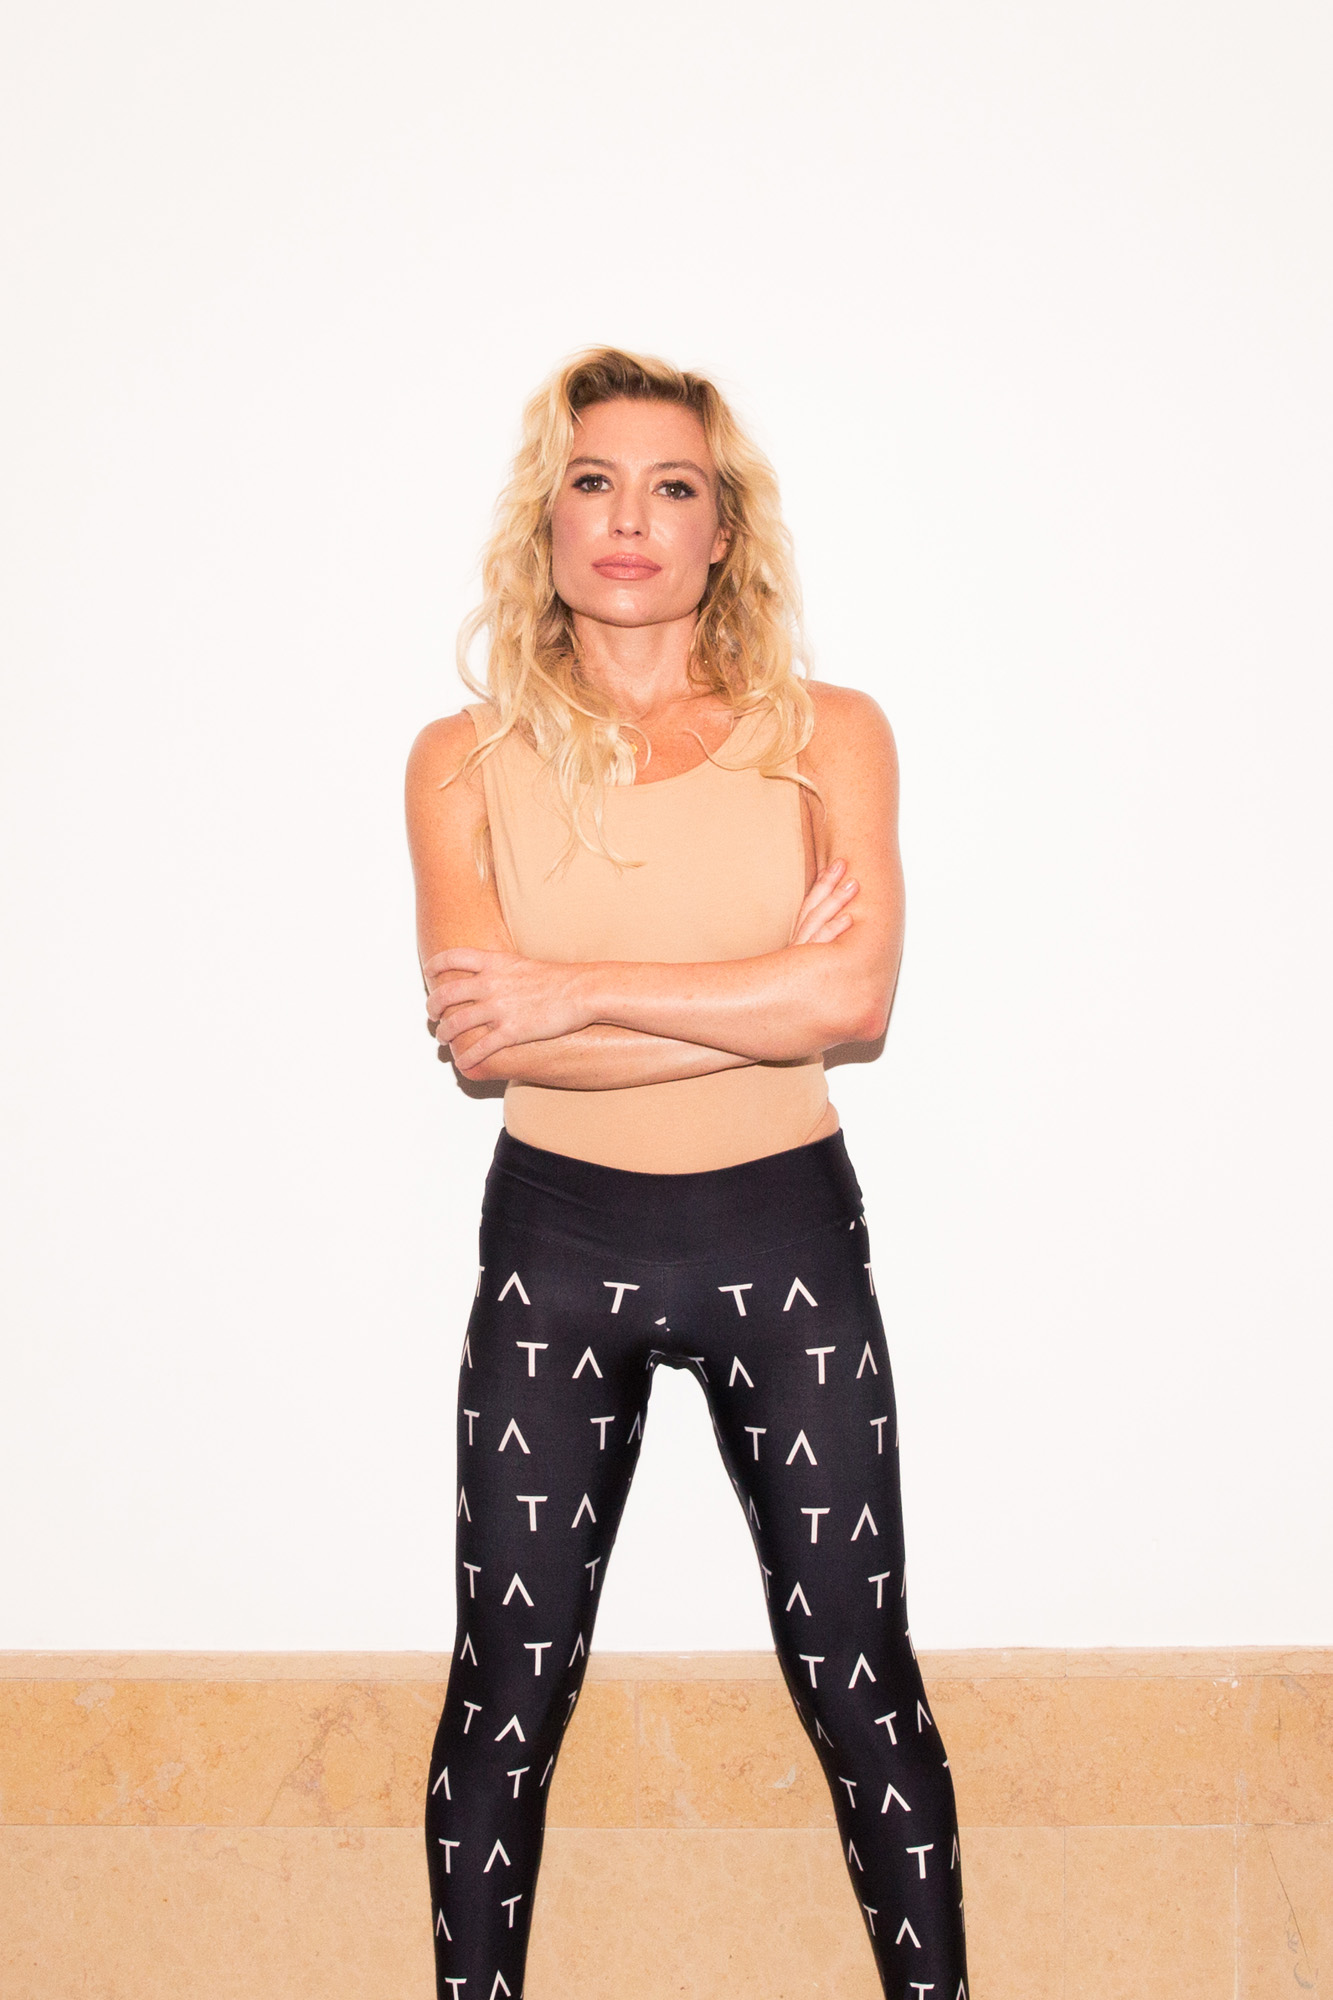 Tracy anderson video